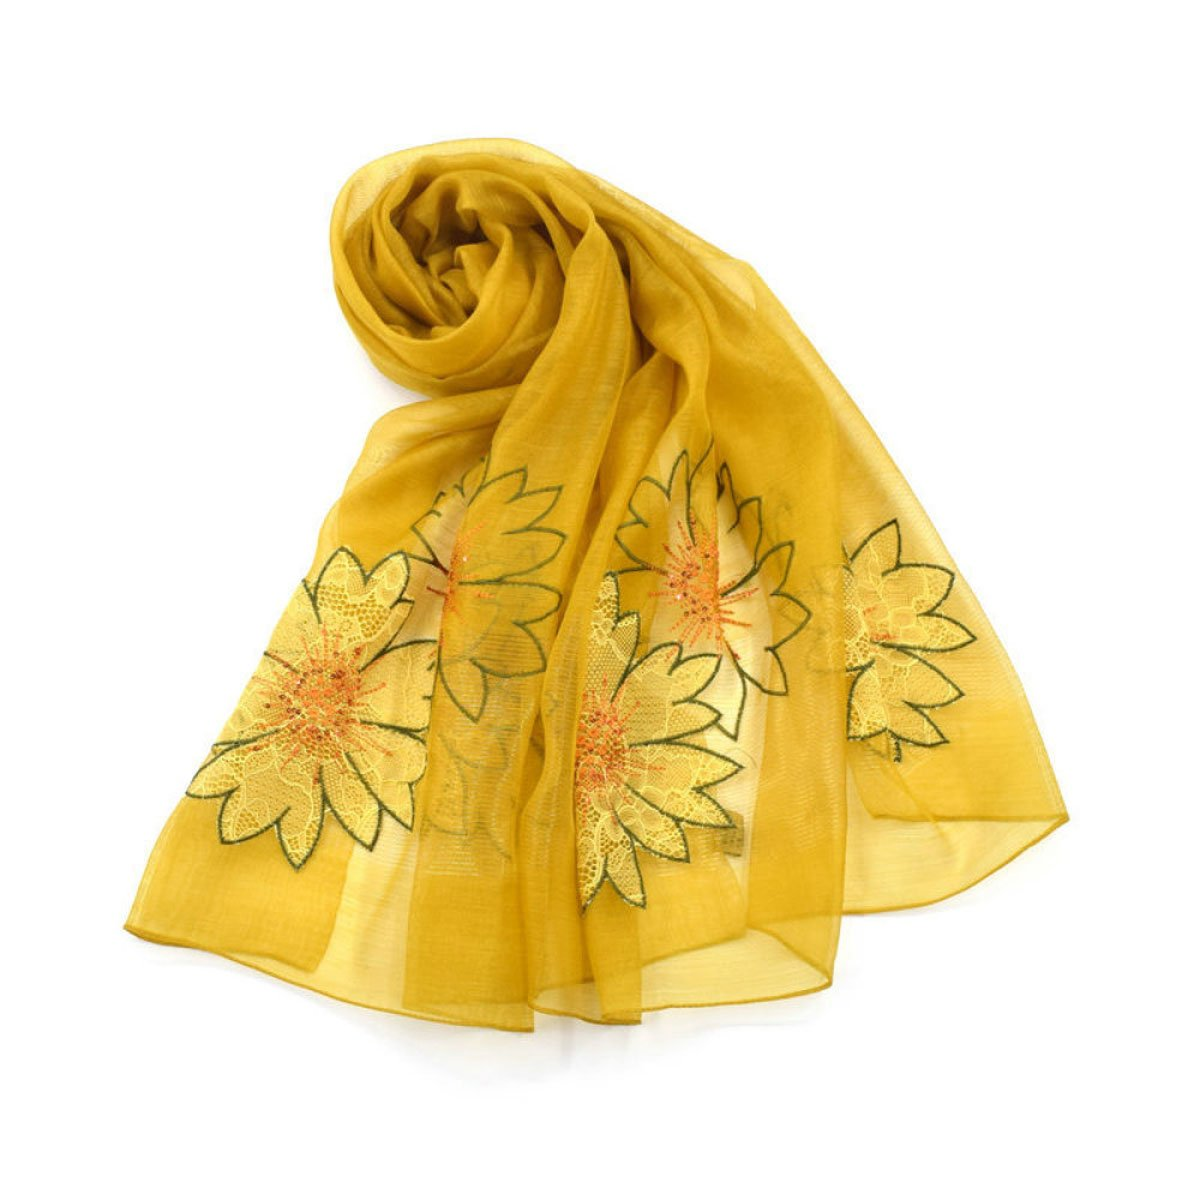 A JUN Silk Scarf Long Section Wild Print Embroidery Embroidery Scarf Shawls Beach Scarf Seasons (Length  190  80cm, Packing of 1) (color   H)